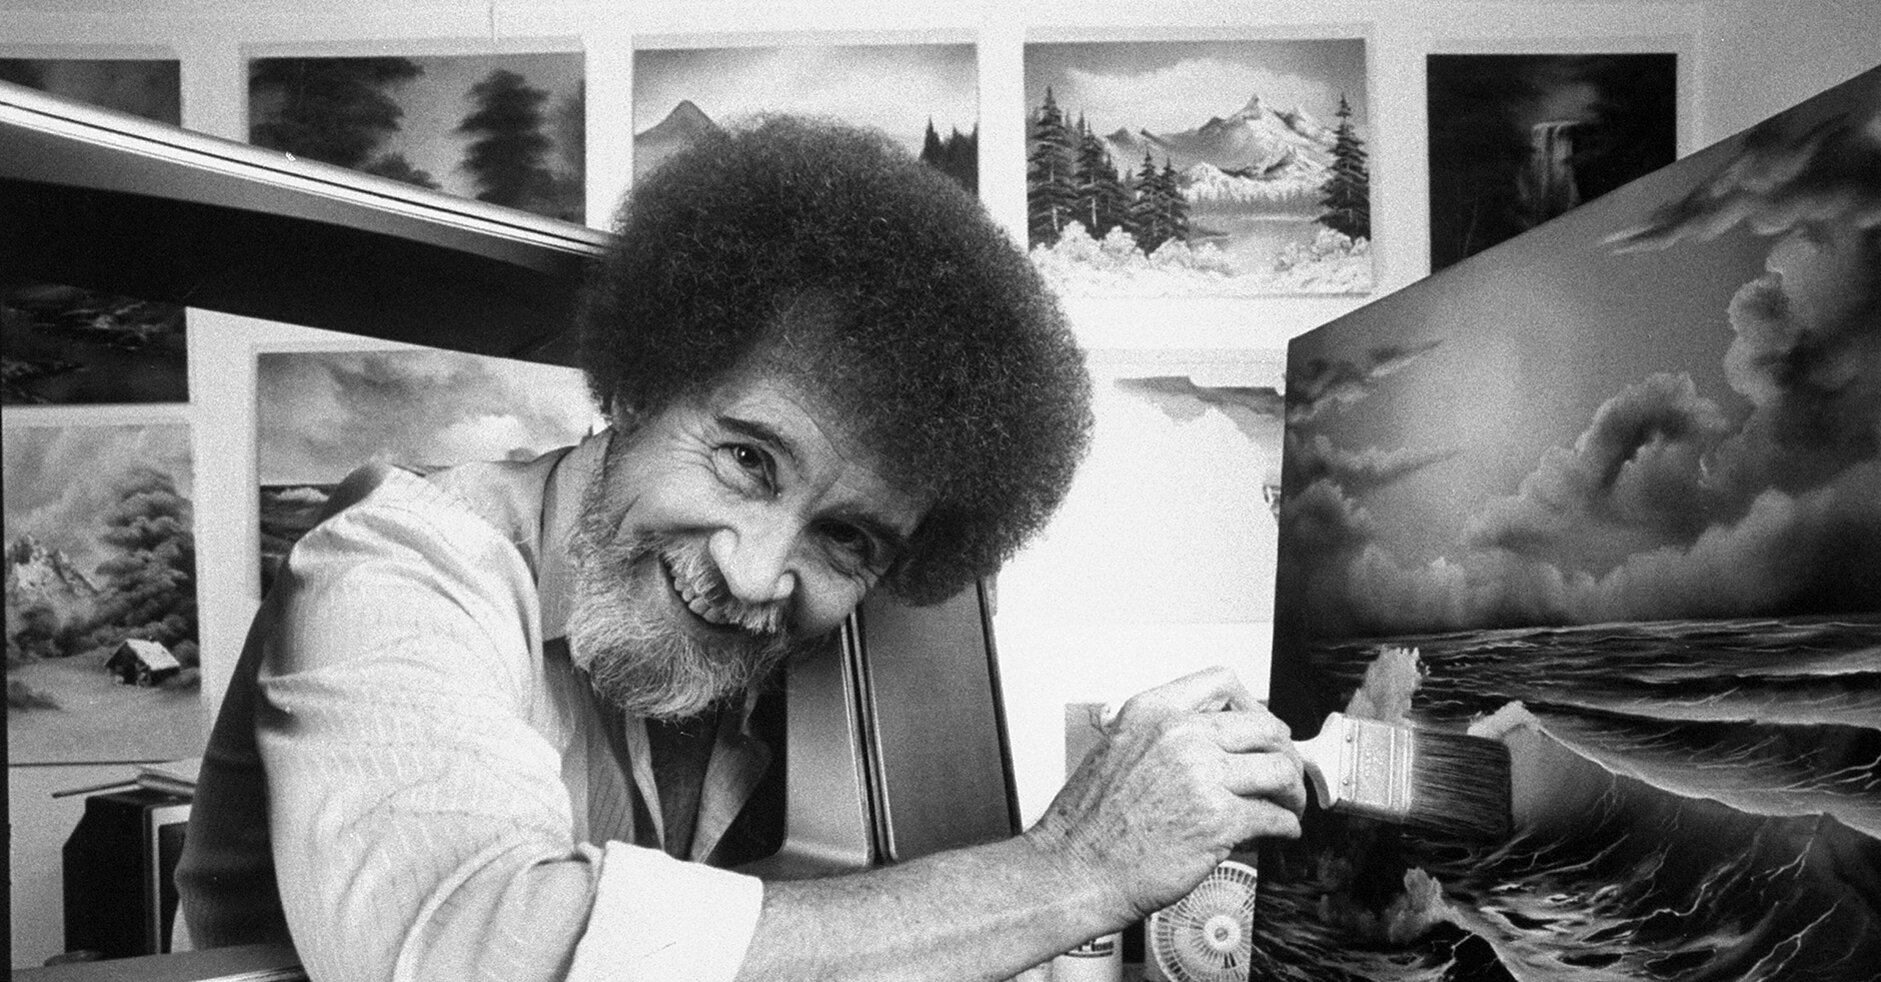 Reminder: You Can Watch Every Episode of Bob Ross's 'The Joy of Painting' for Free Online